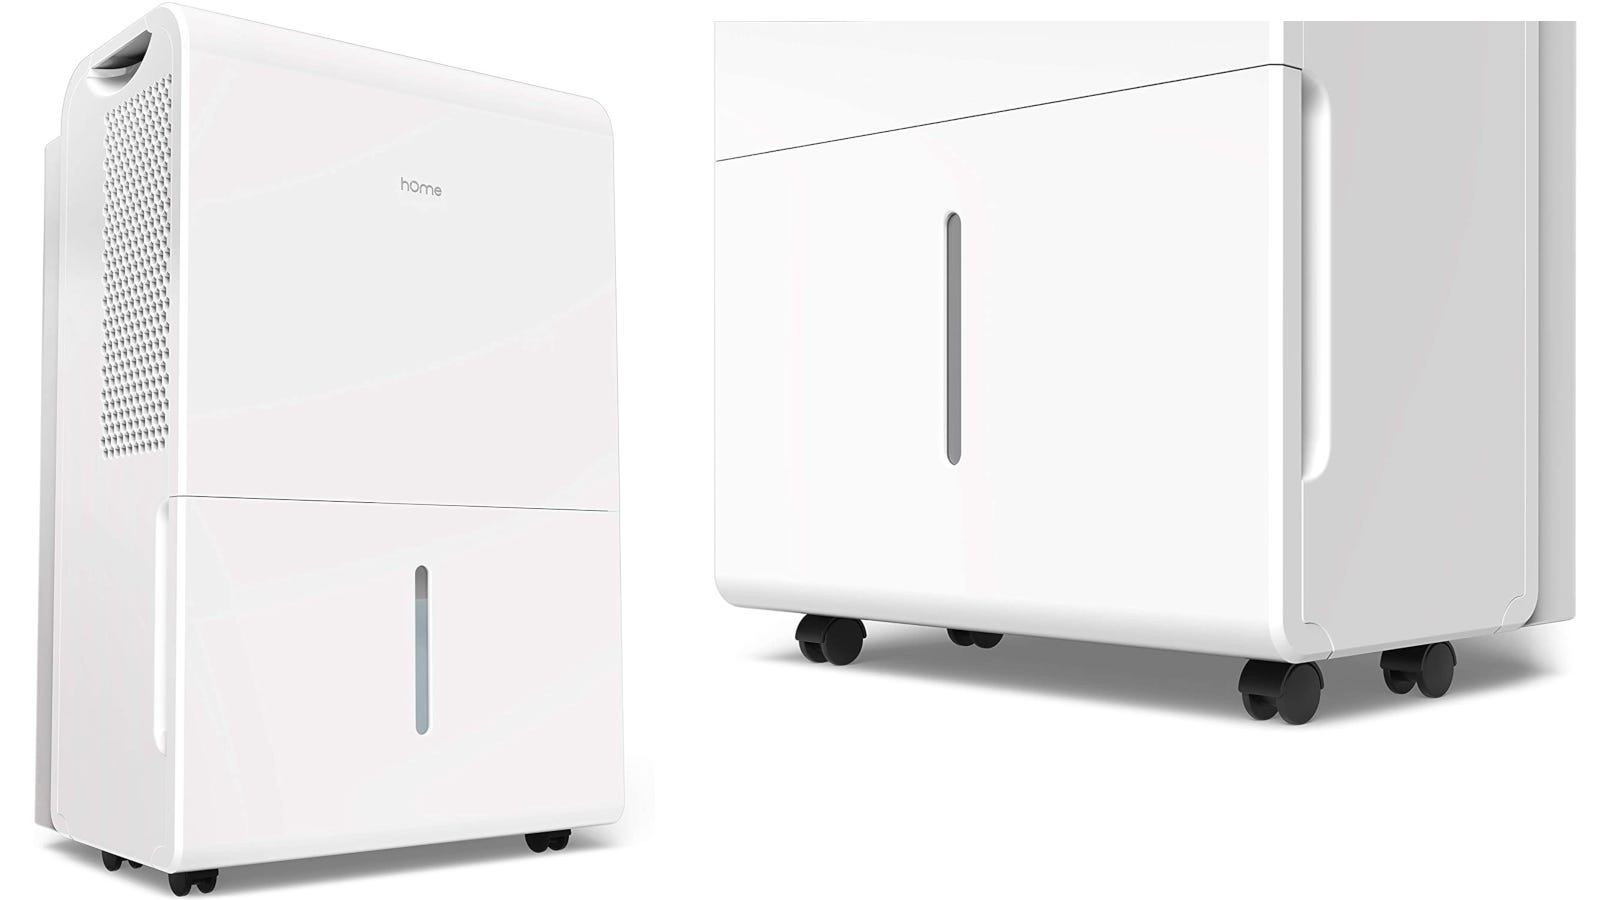 Two views of a white dehumidifier with wheels.